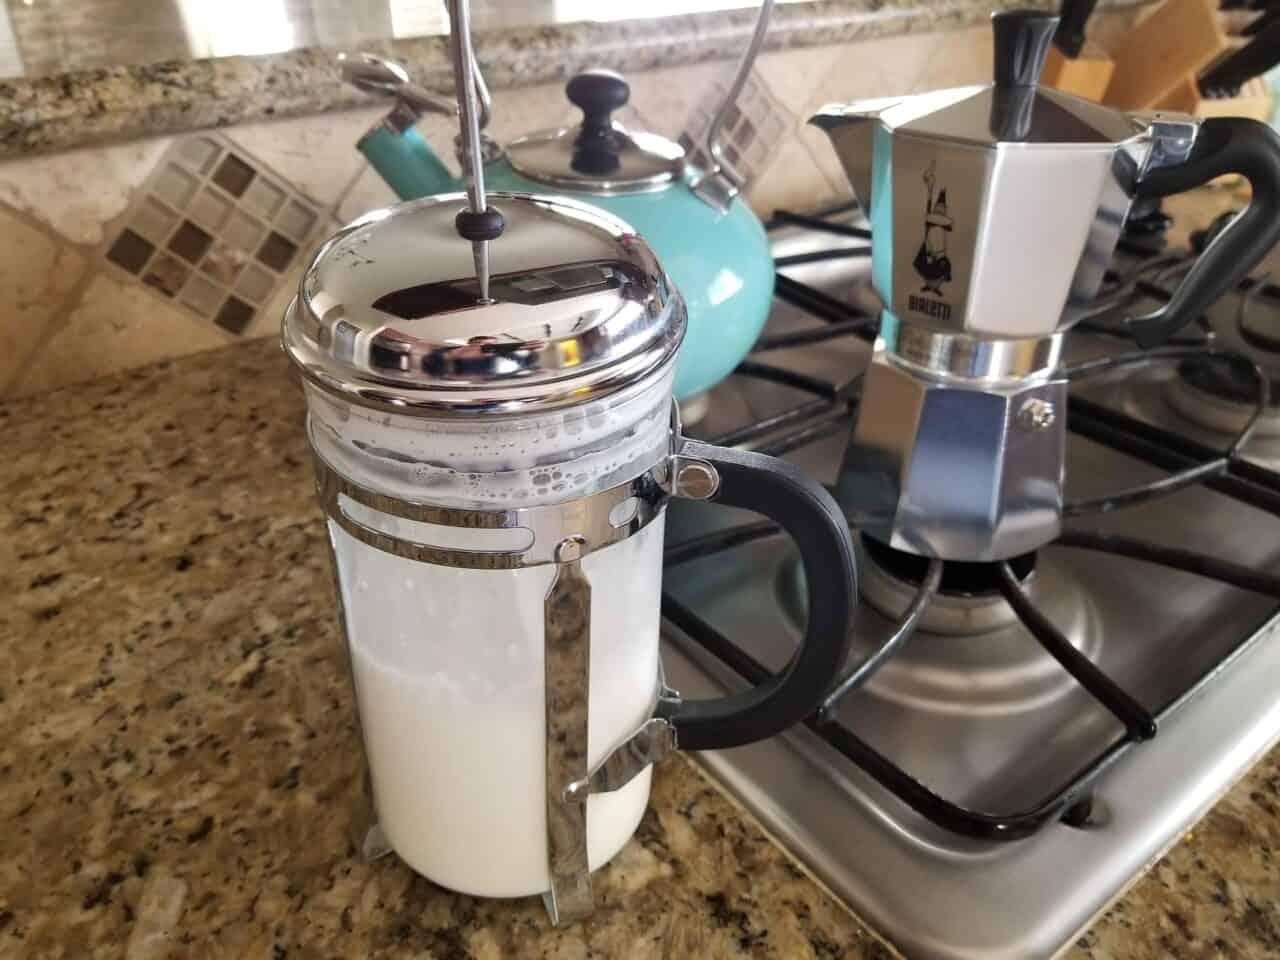 Frothing milk with a French press